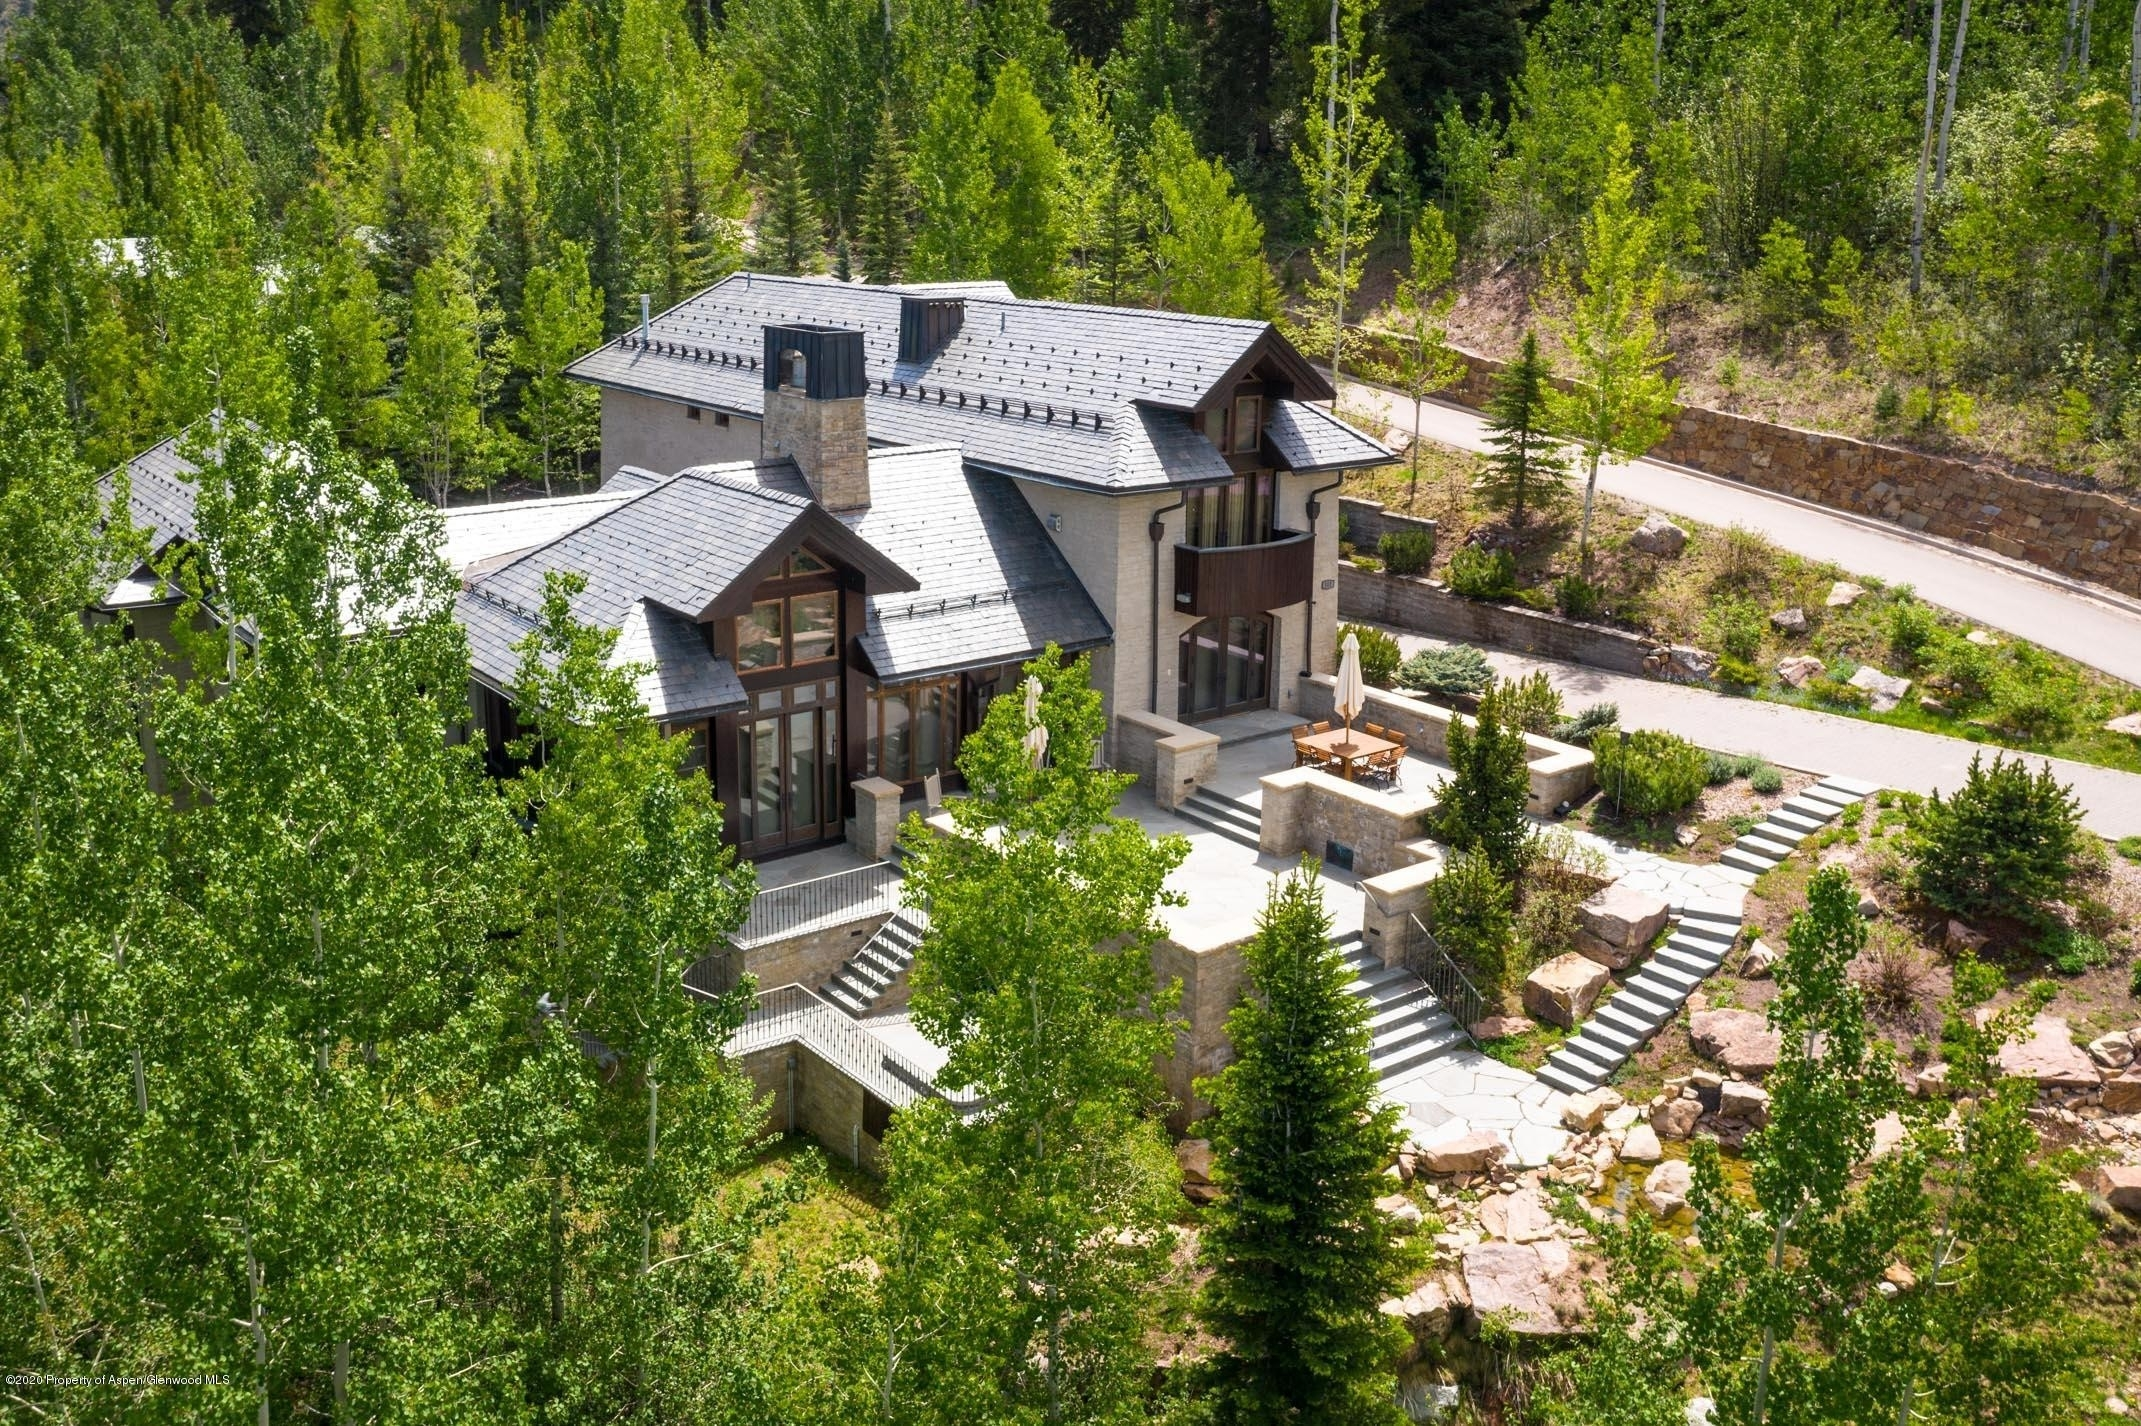 Property at Five Trees, Aspen, CO 81611